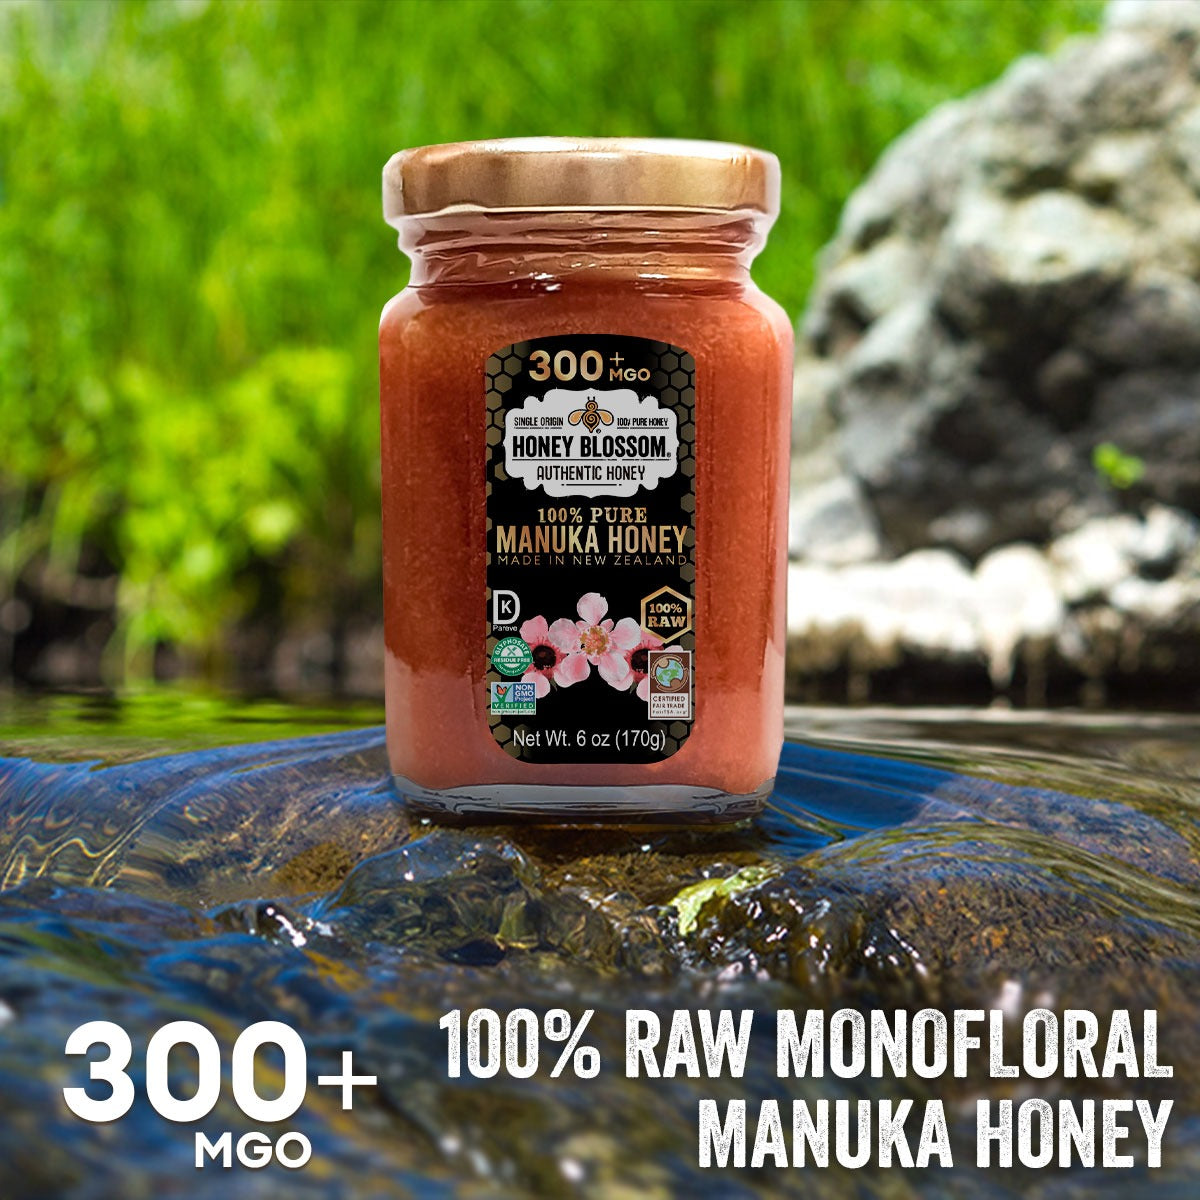 Image of a jar of Manuka Honey on a rock in a river with many trees in the background. And text that reads: 300+ MGO, 100% RAW Monofloral Manuka Honey